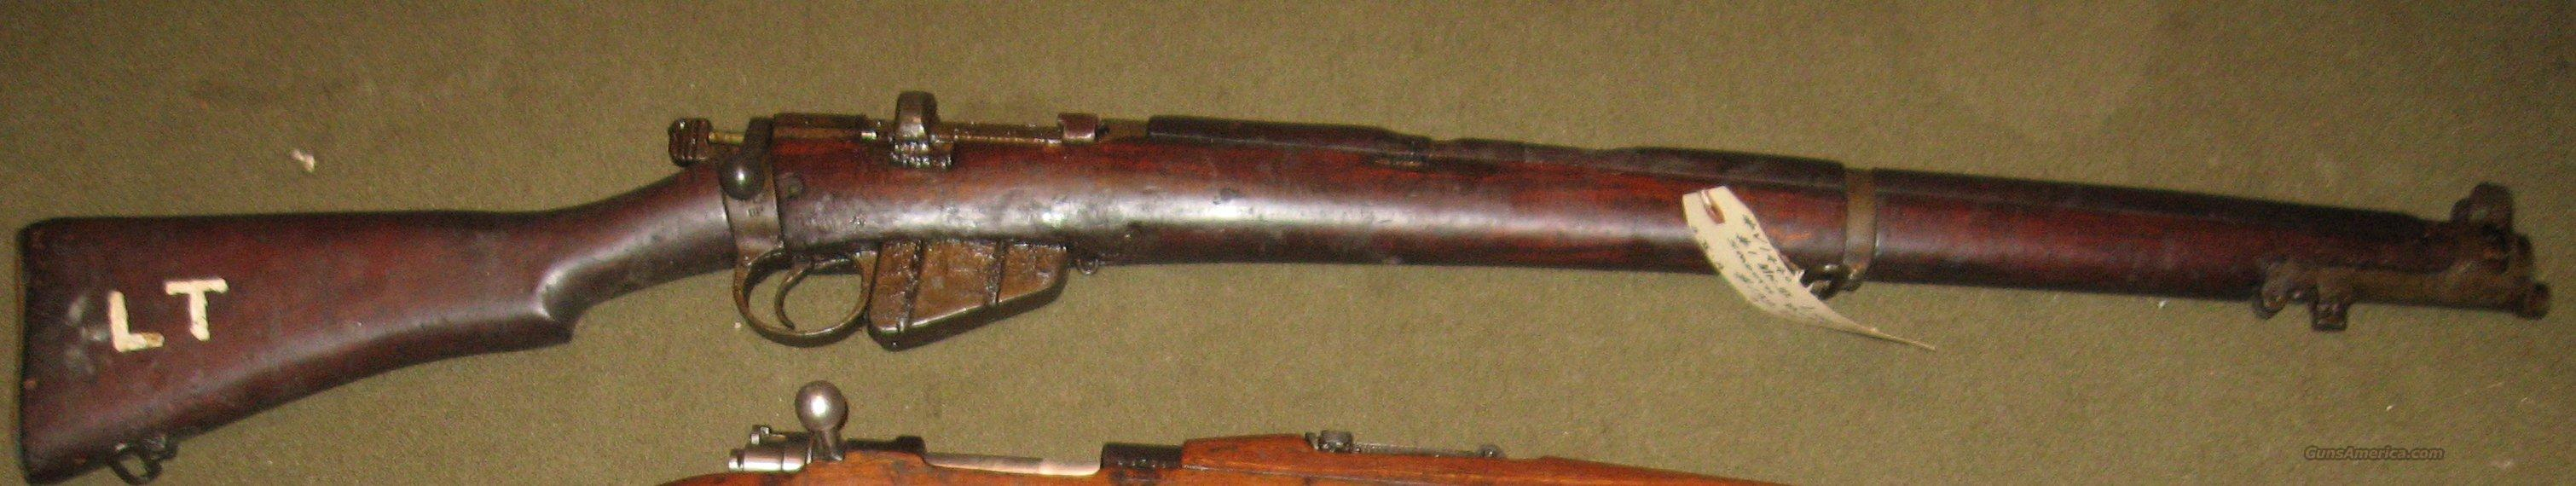 Naval Line Thrower Brit. No.1  Guns > Rifles > Military Misc. Rifles Non-US > Other